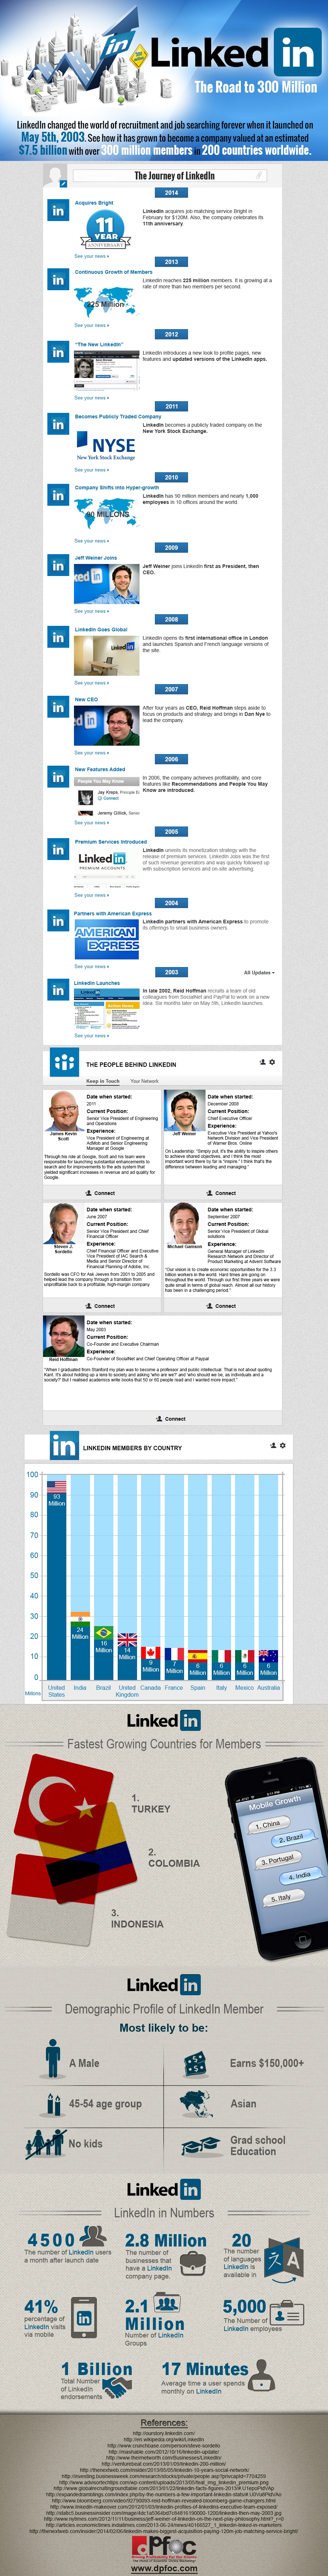 LinkedIn Facts and Figures 2014